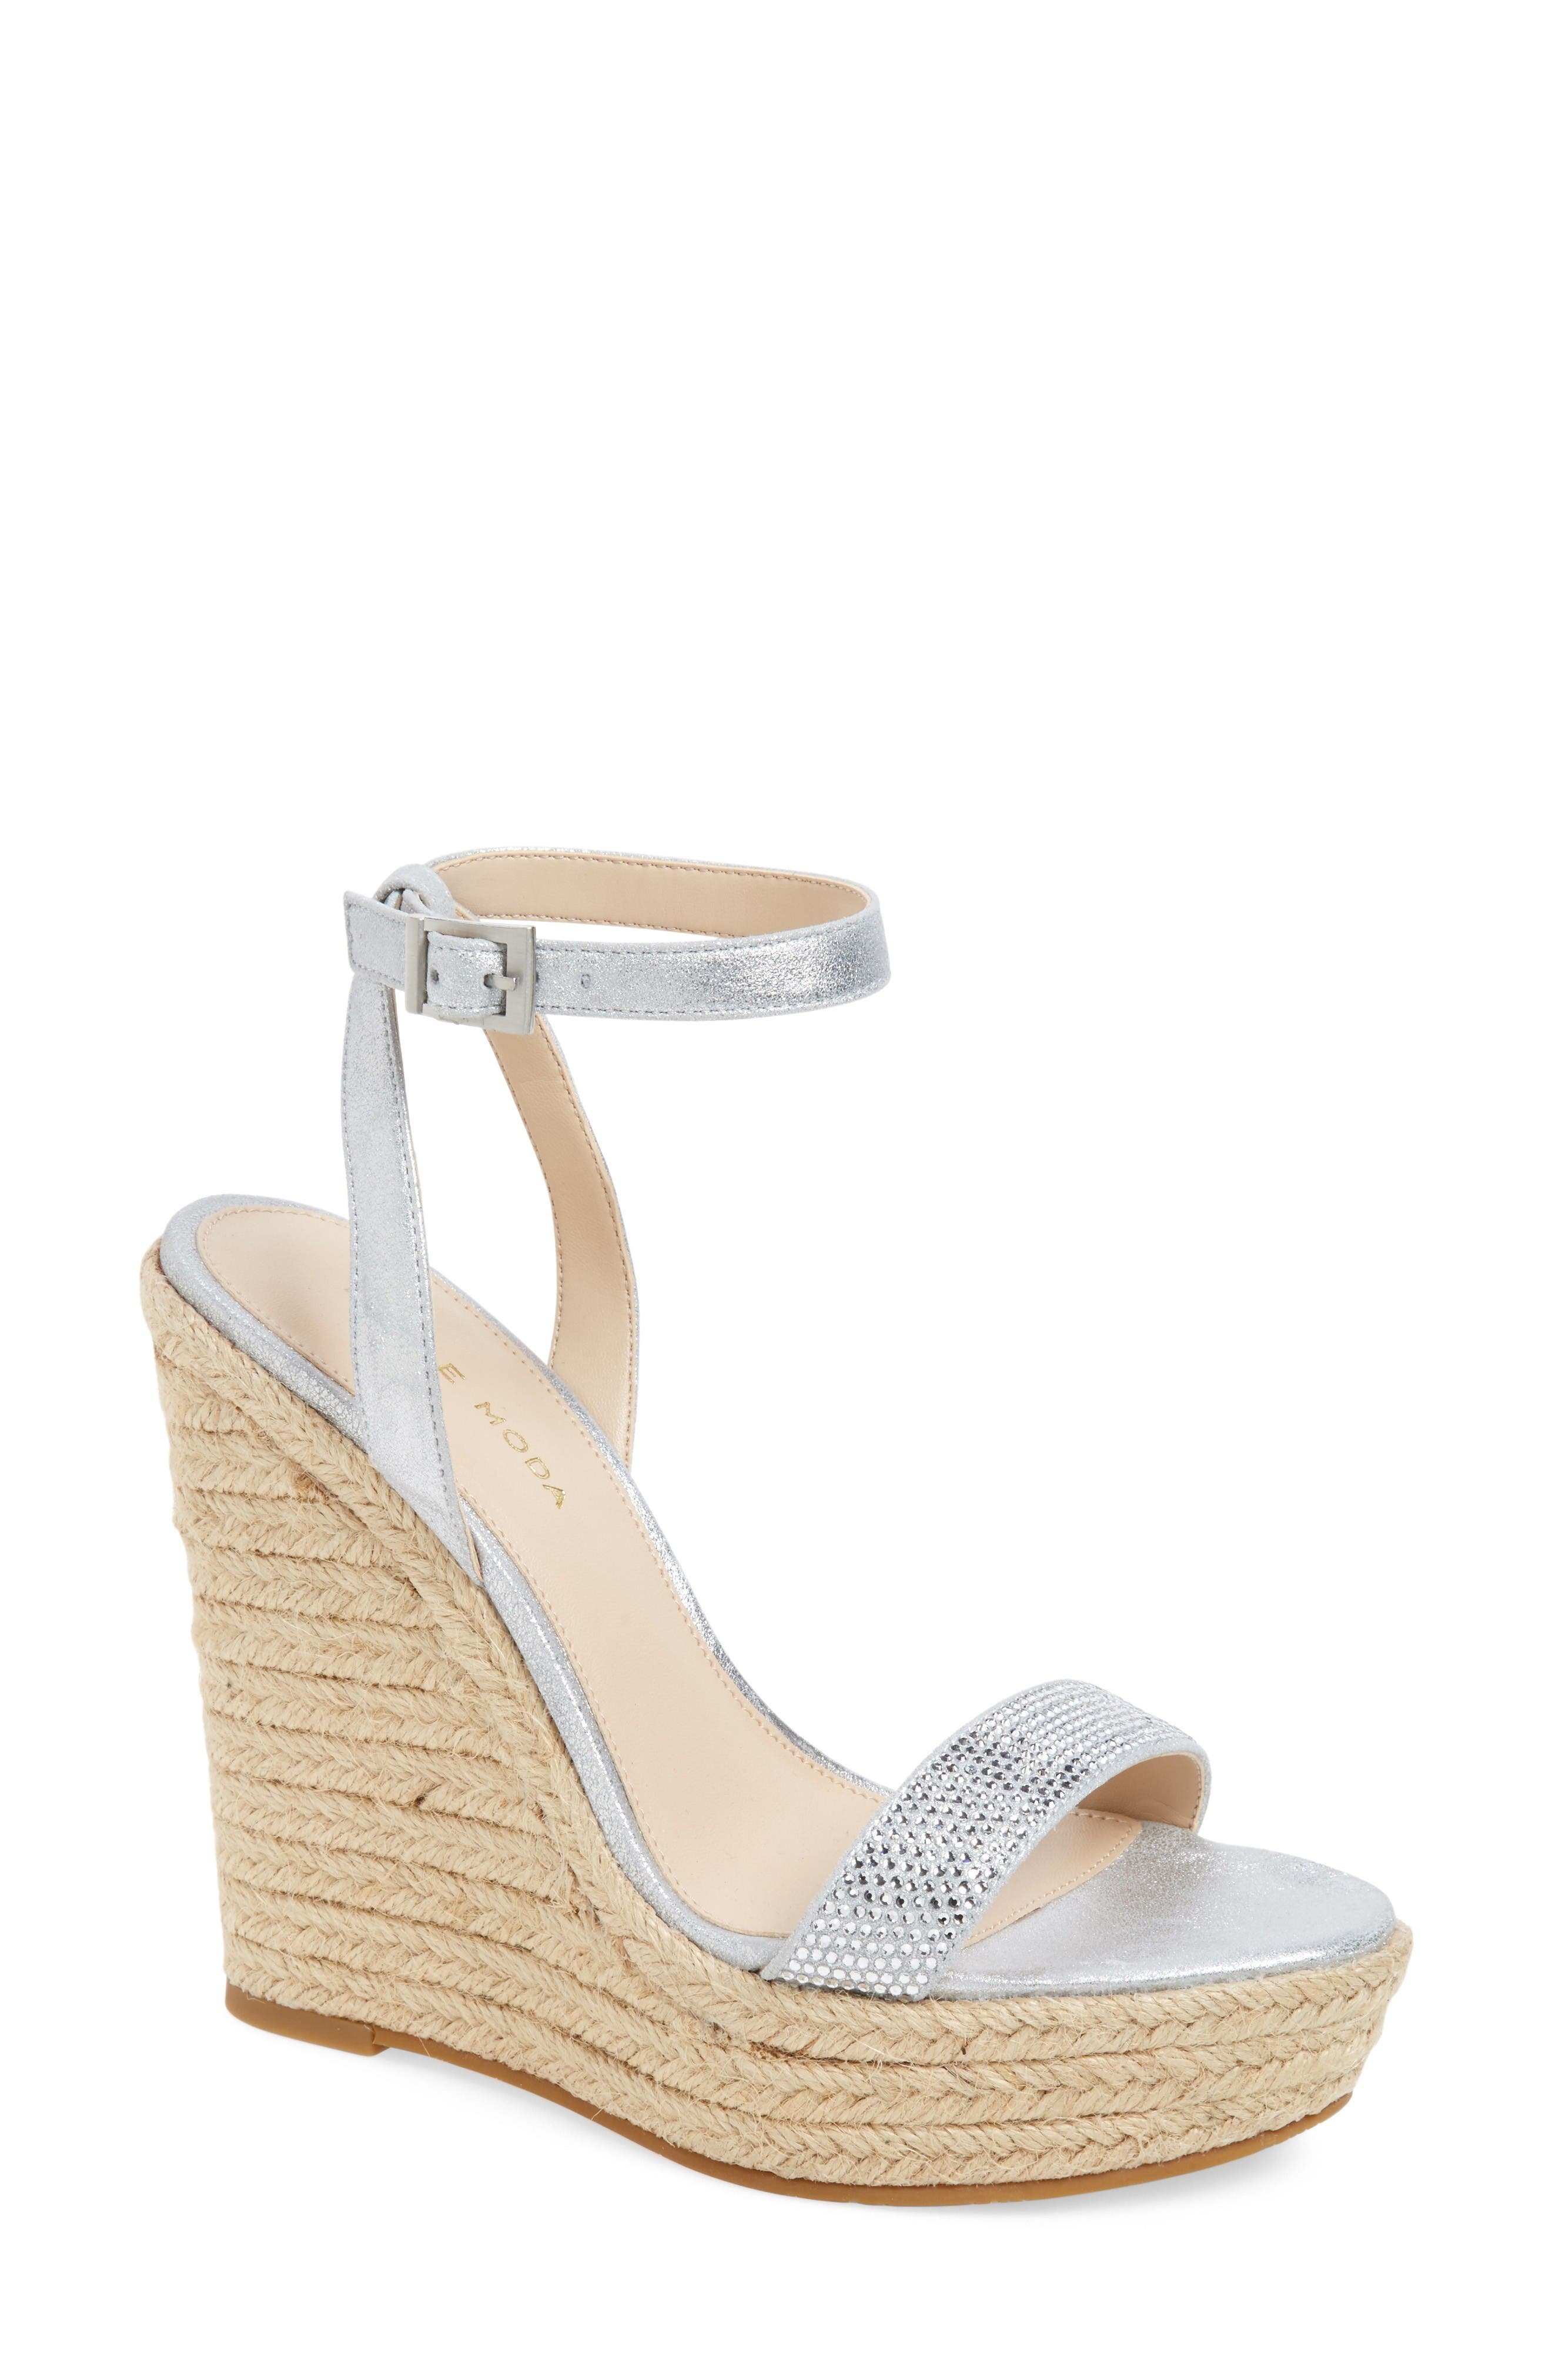 Only Embellished Platform Wedge,                             Main thumbnail 1, color,                             Silver Leather